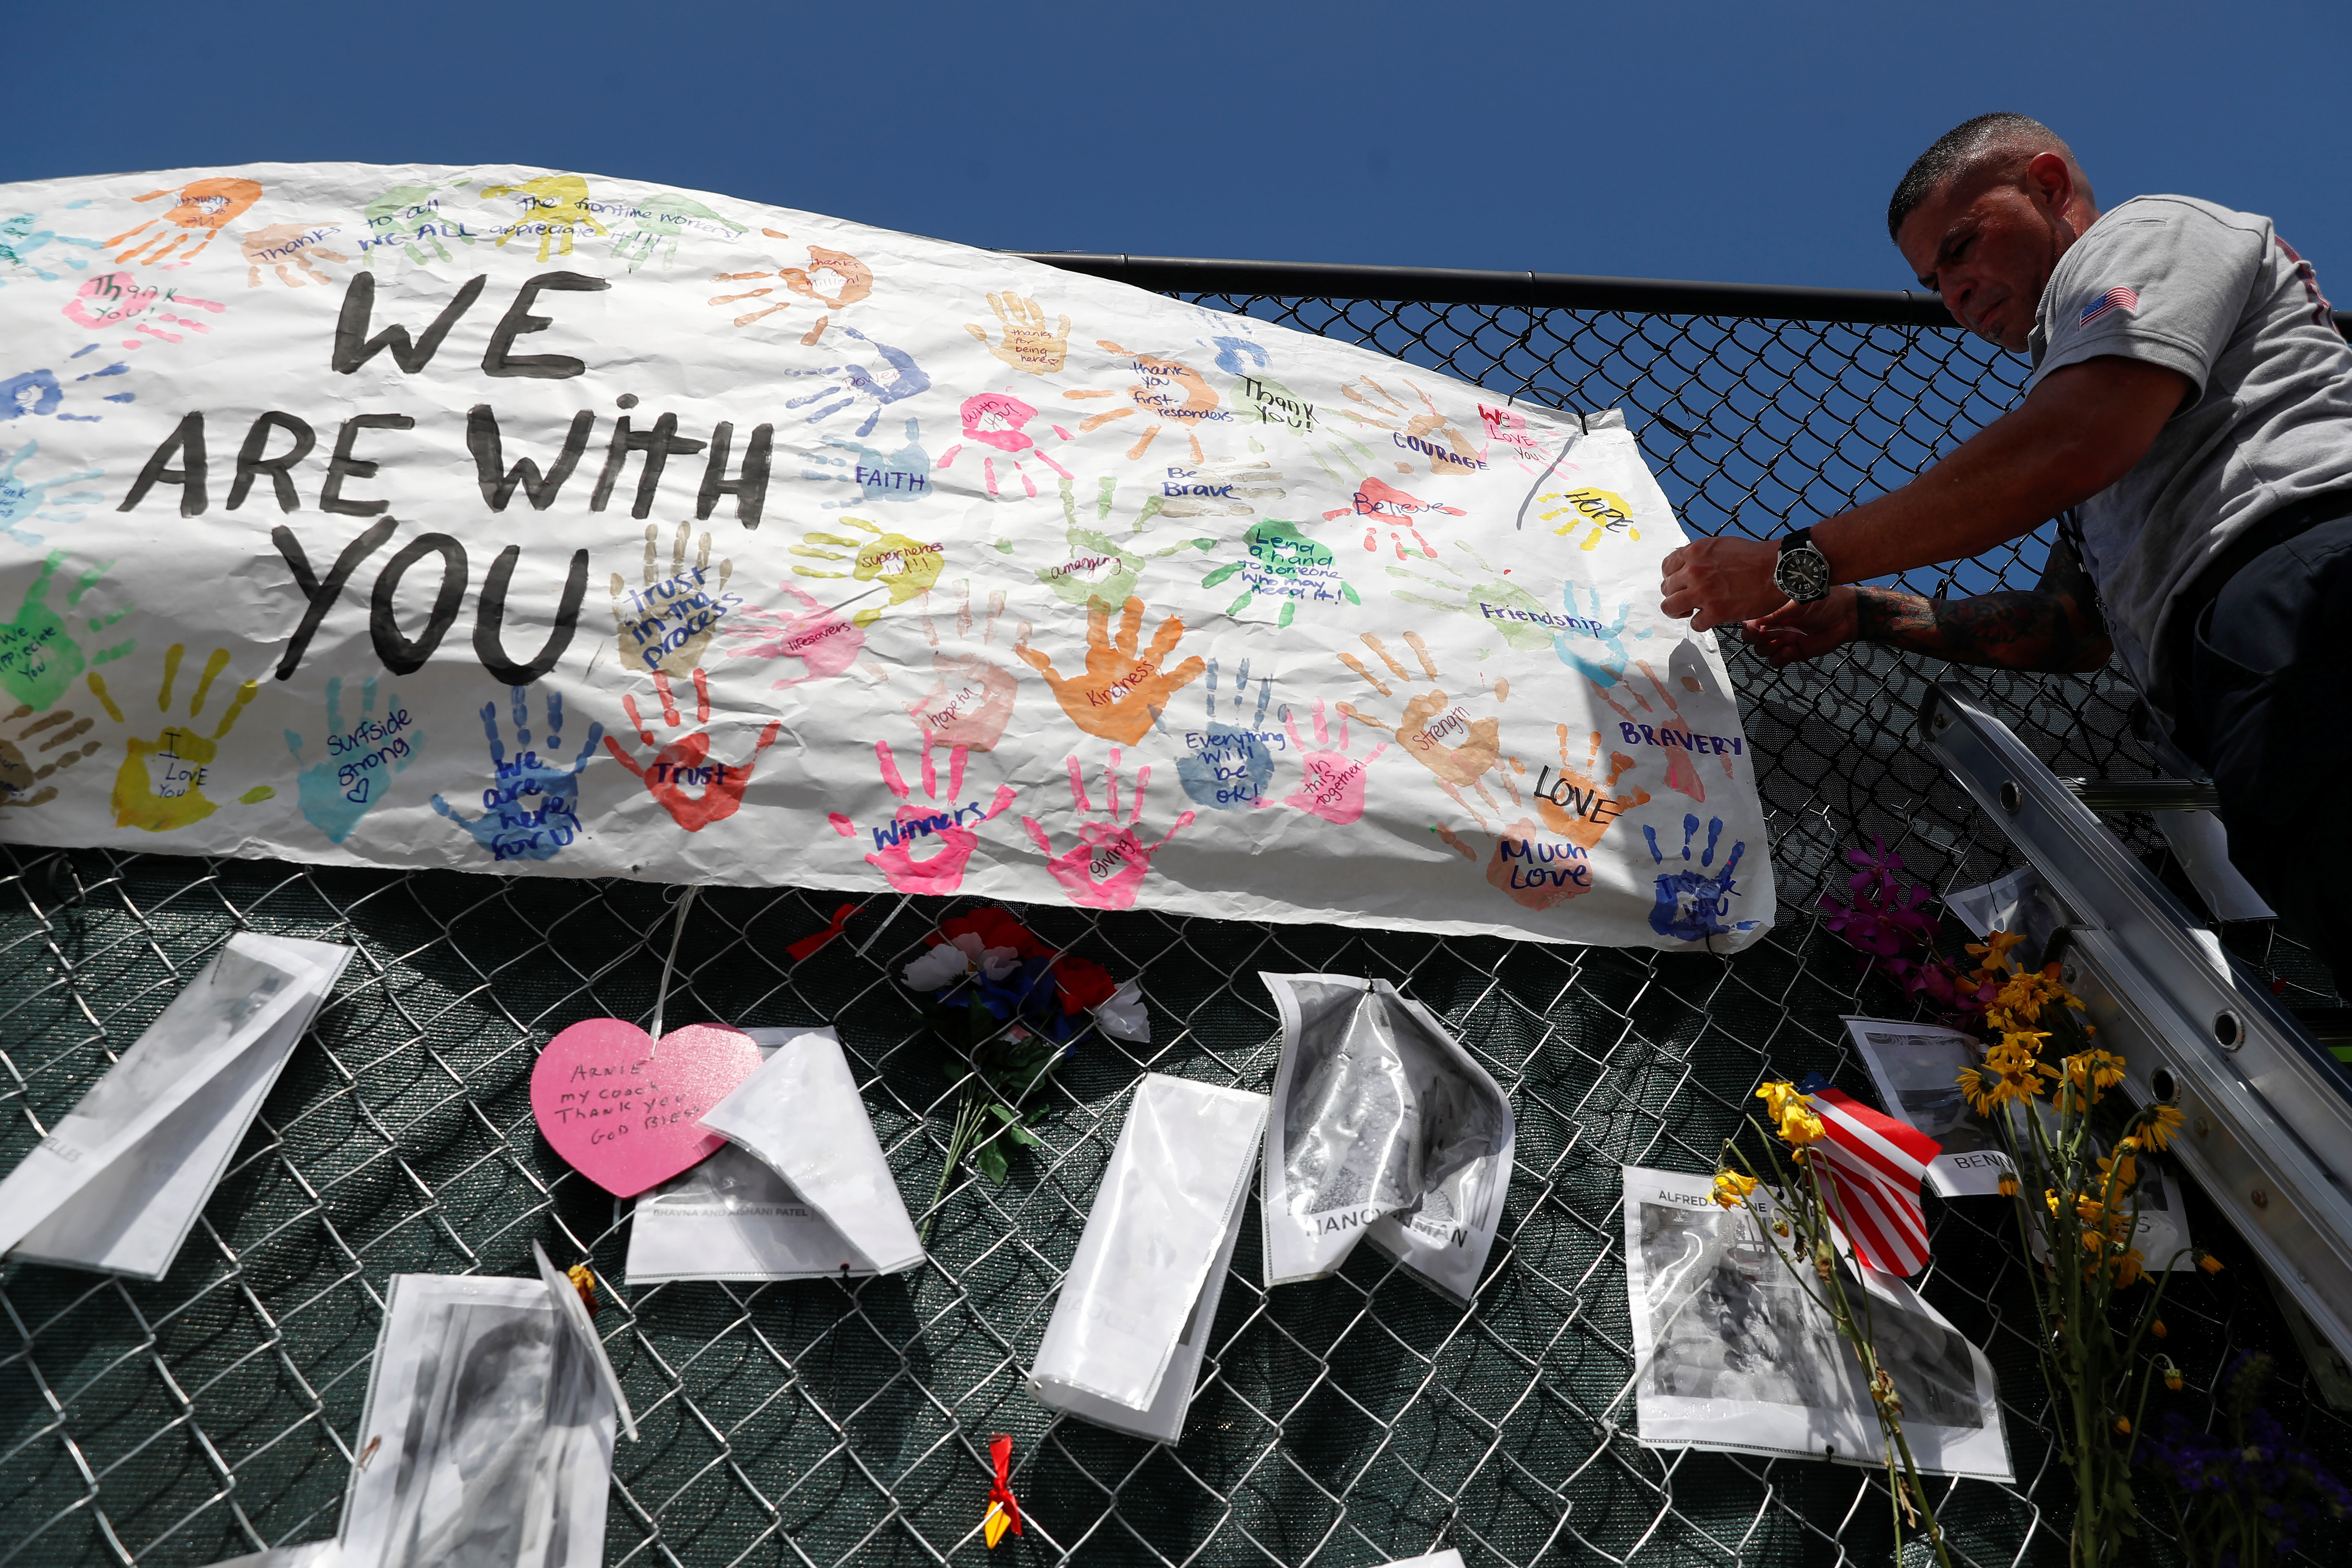 A member of the Miami-Dade Fire Rescue unit places a sign on a makeshift memorial for the victims of the Surfside's Champlain Towers South condominium collapse in Miami, Florida, U.S., July 8, 2021. REUTERS/Shannon Stapleton